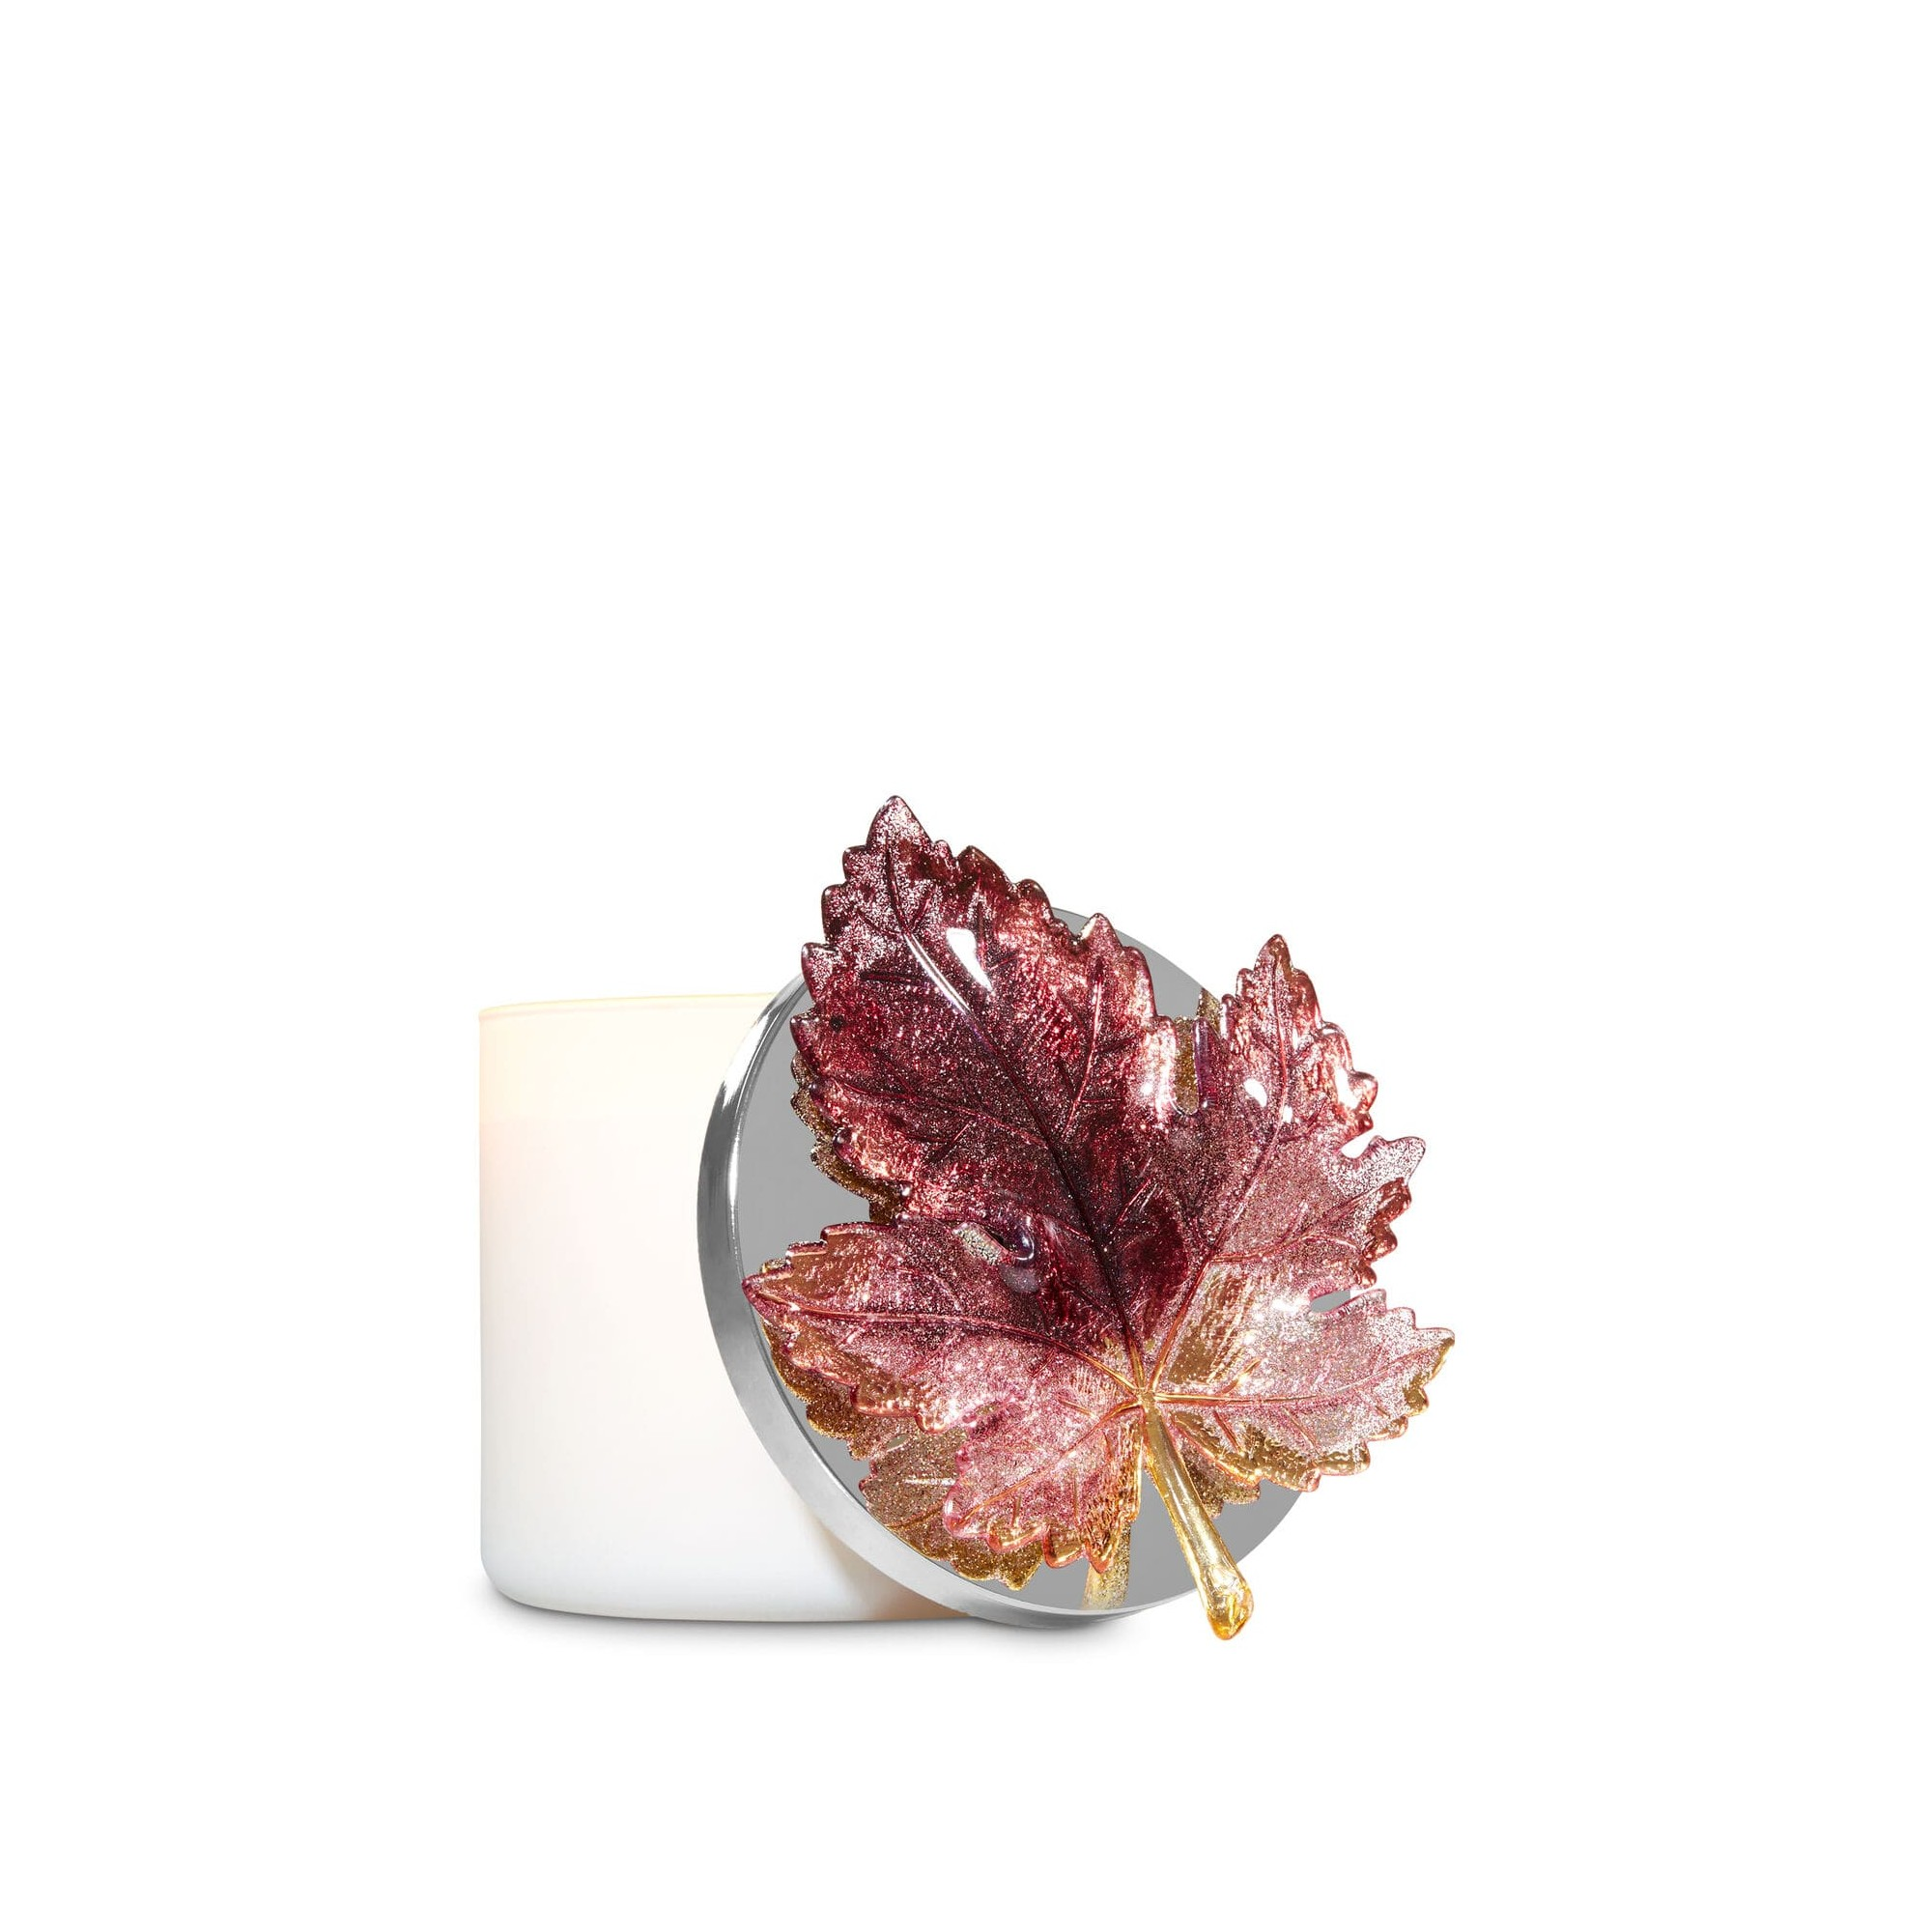 Bath & Body Works Glittery Burgundy Leaf 3-Wick Candle Magnet